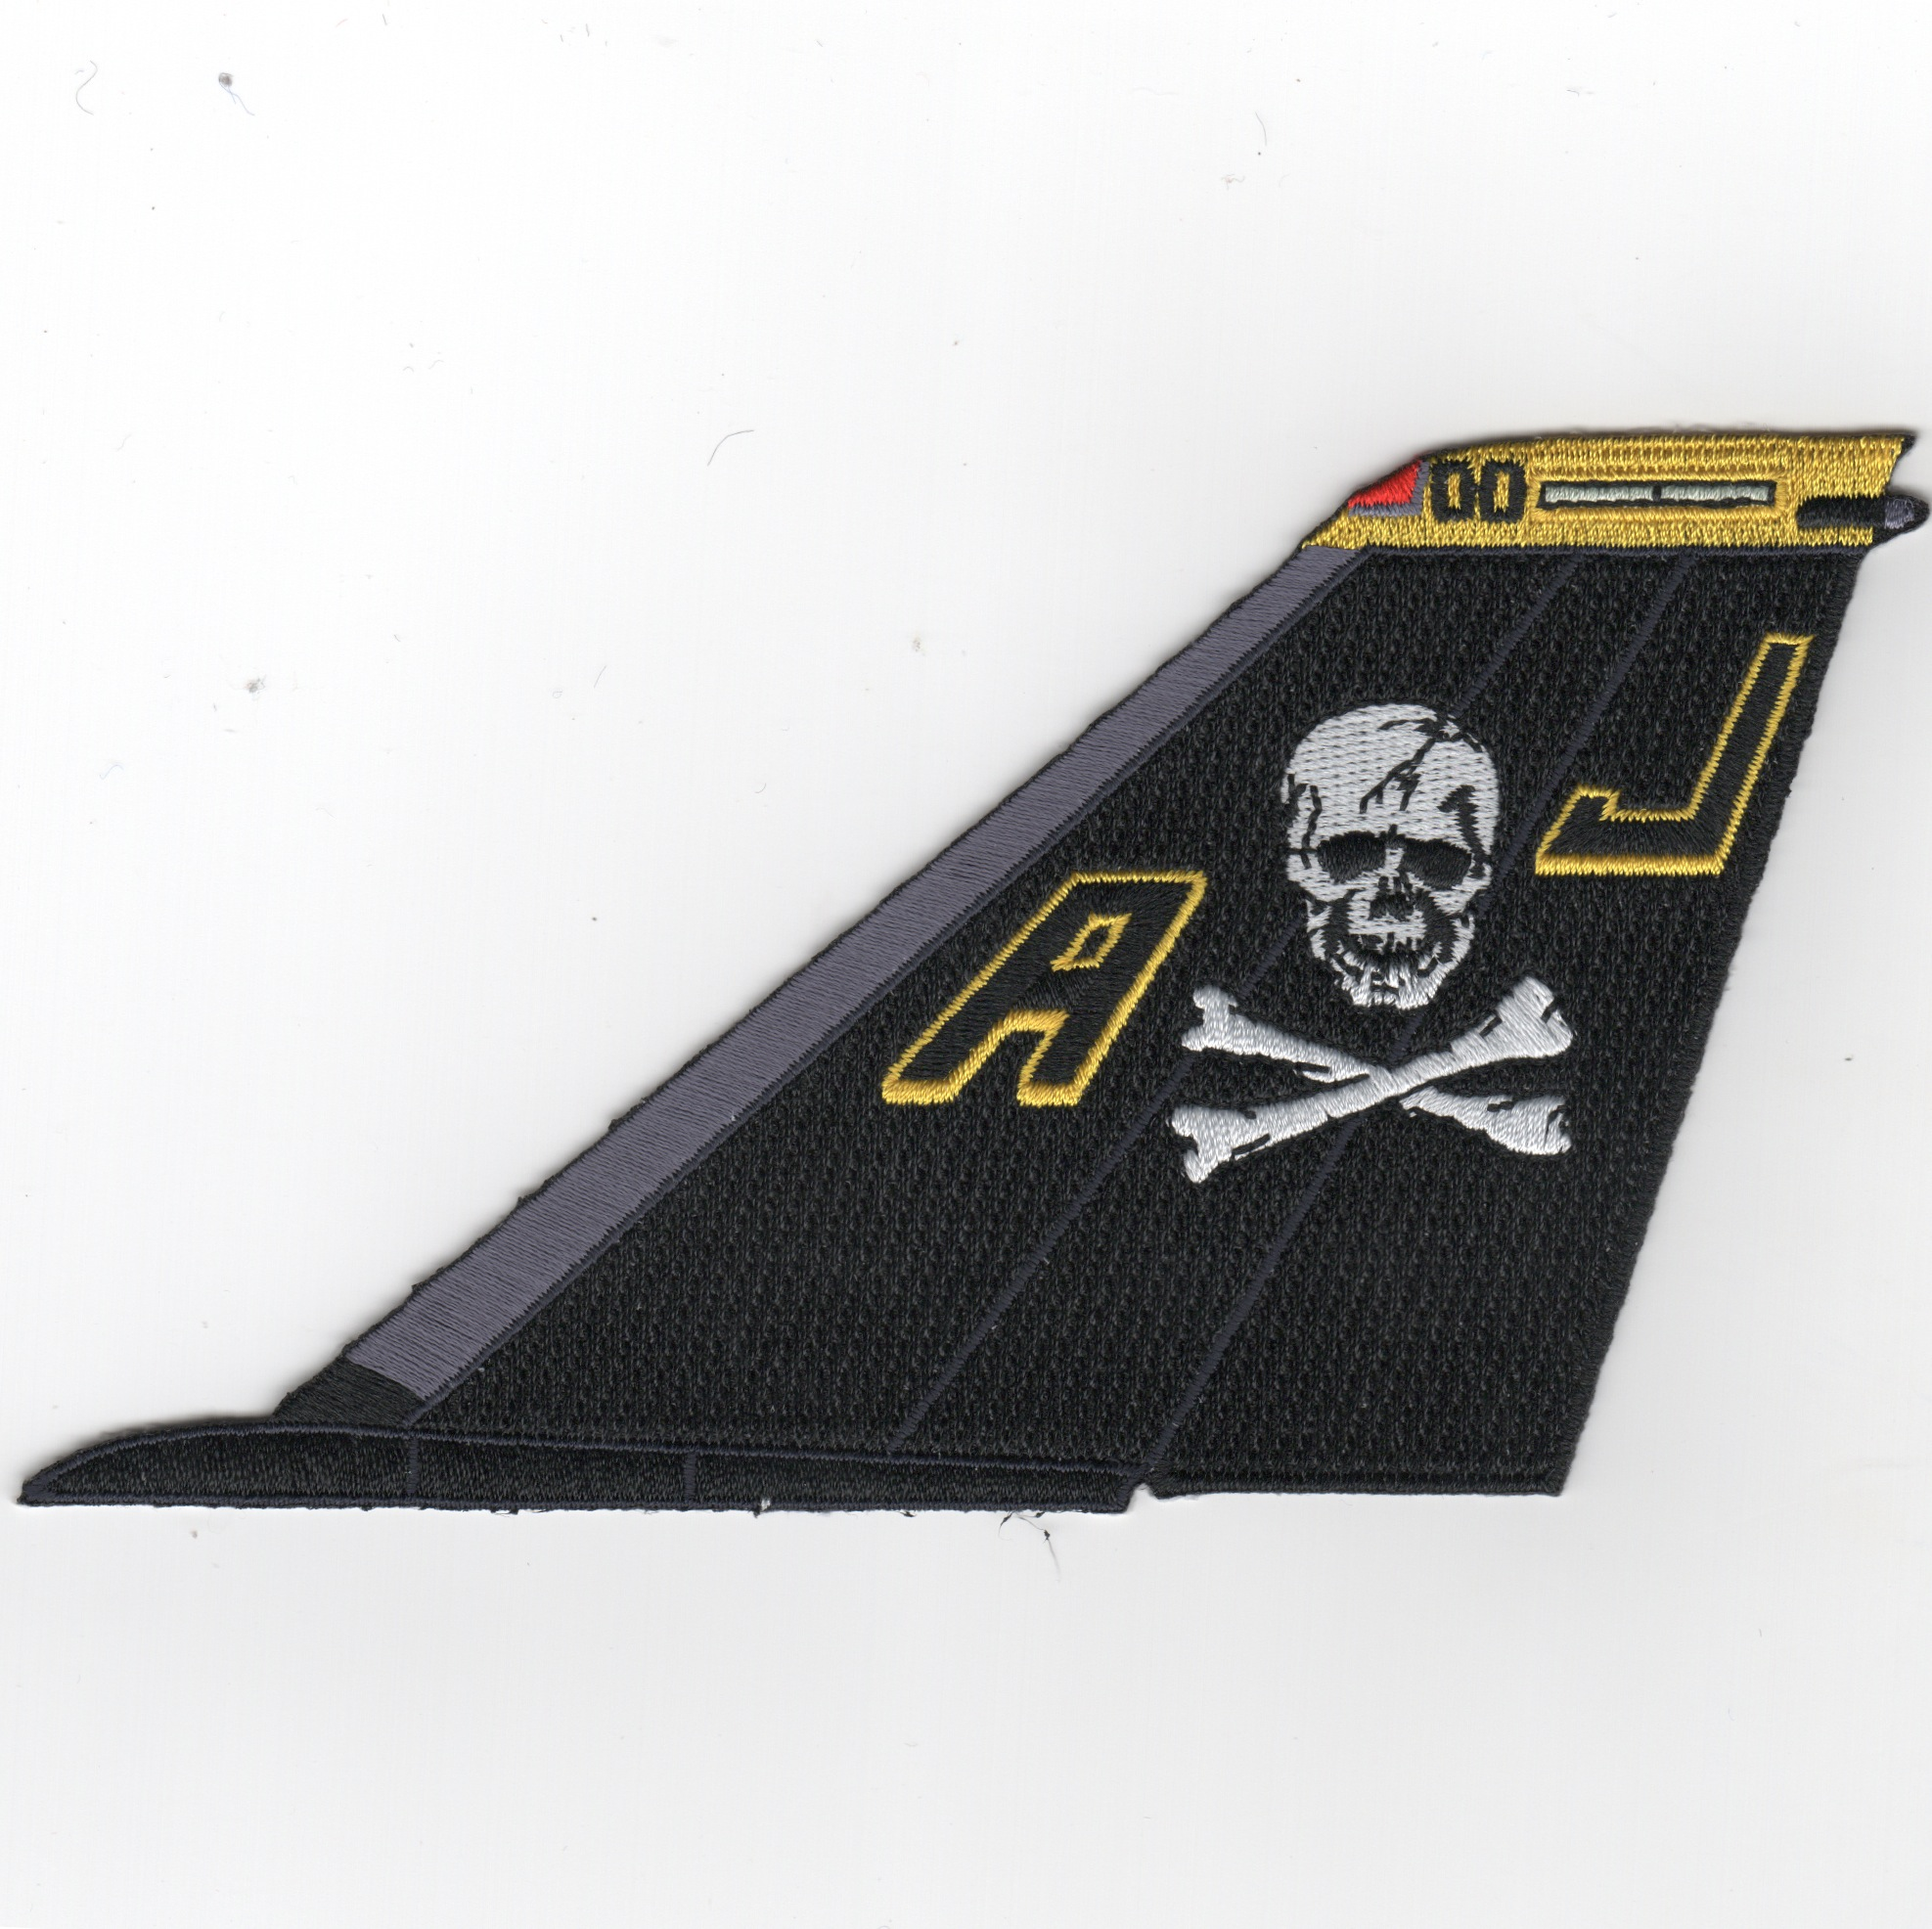 VF-84 F-14 Tomcat TailFin (No Text/Color)